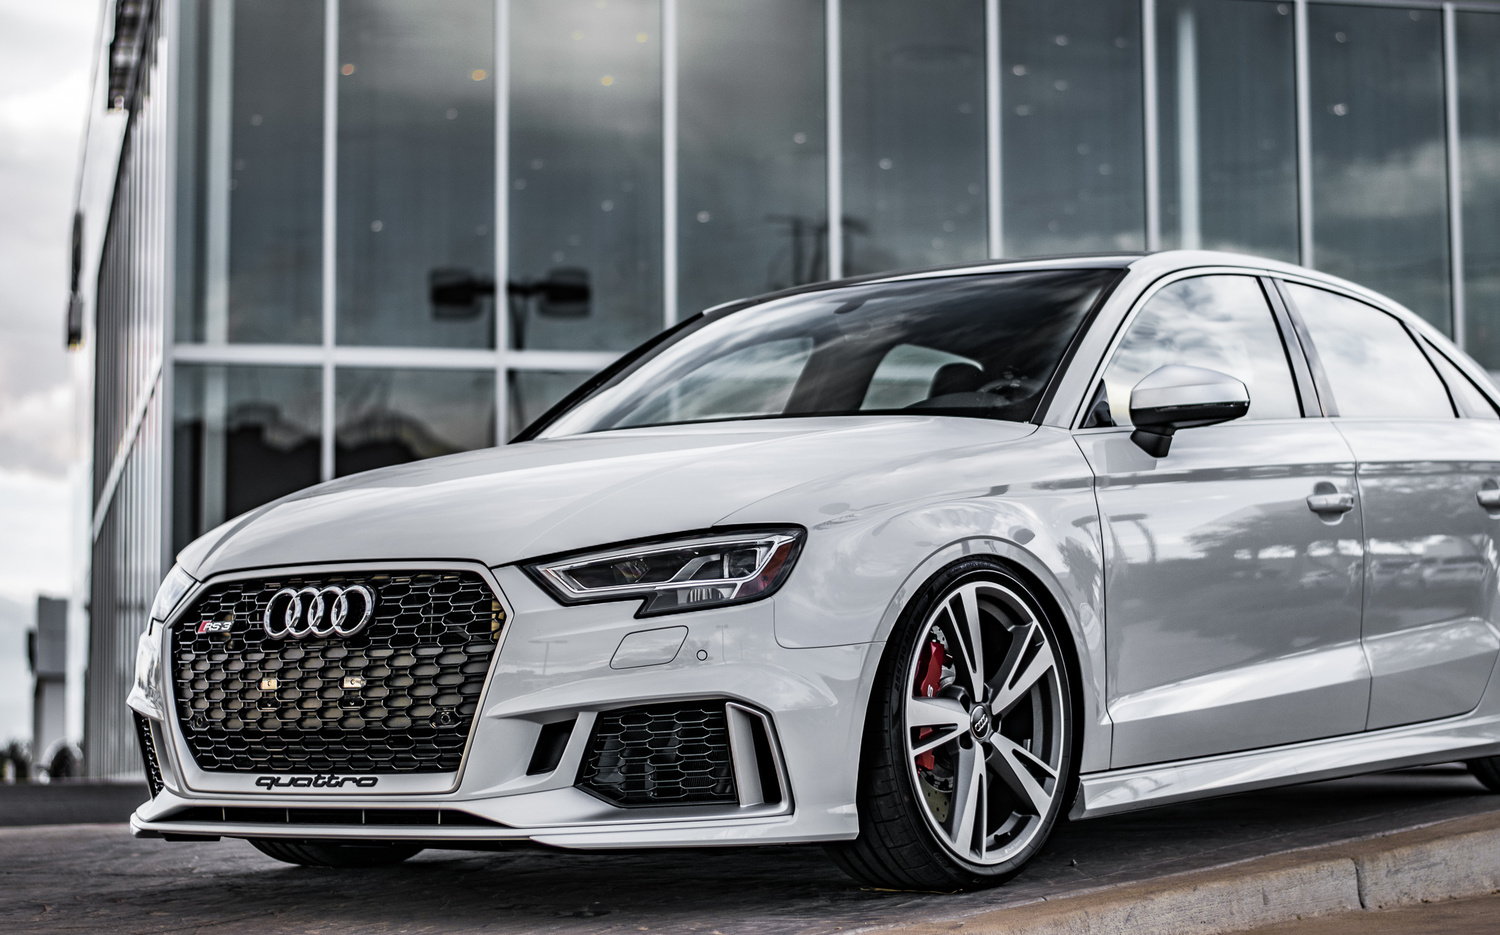 Audi RS3 by Travis Pinney